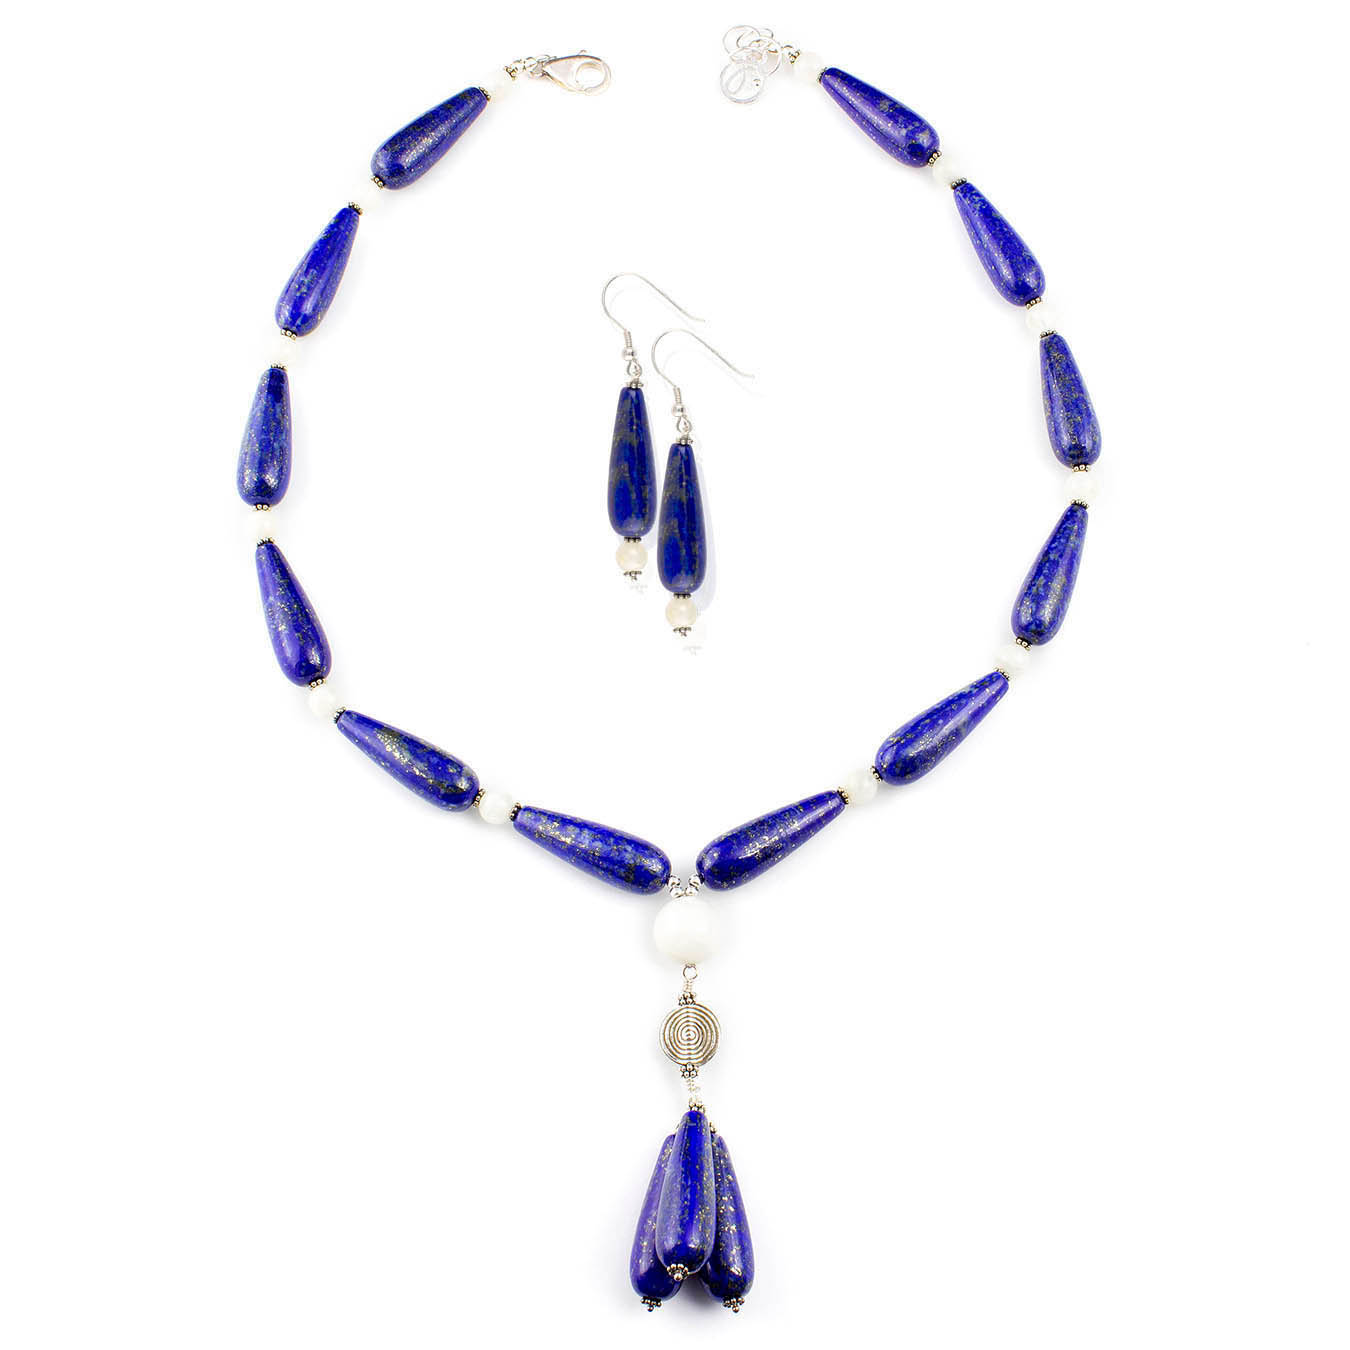 Beaded jewelry birthstone necklace made of moonstone and lapis lazuli